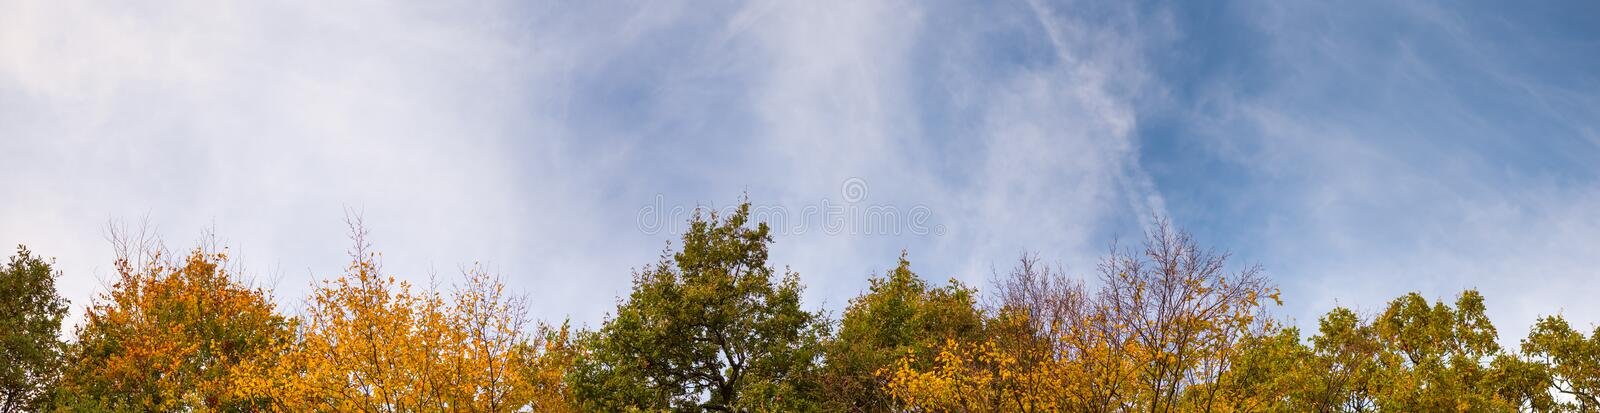 Autumn time. Colorful leaves of trees tops on sky background. Super wide angle natural background, banner format.  stock images